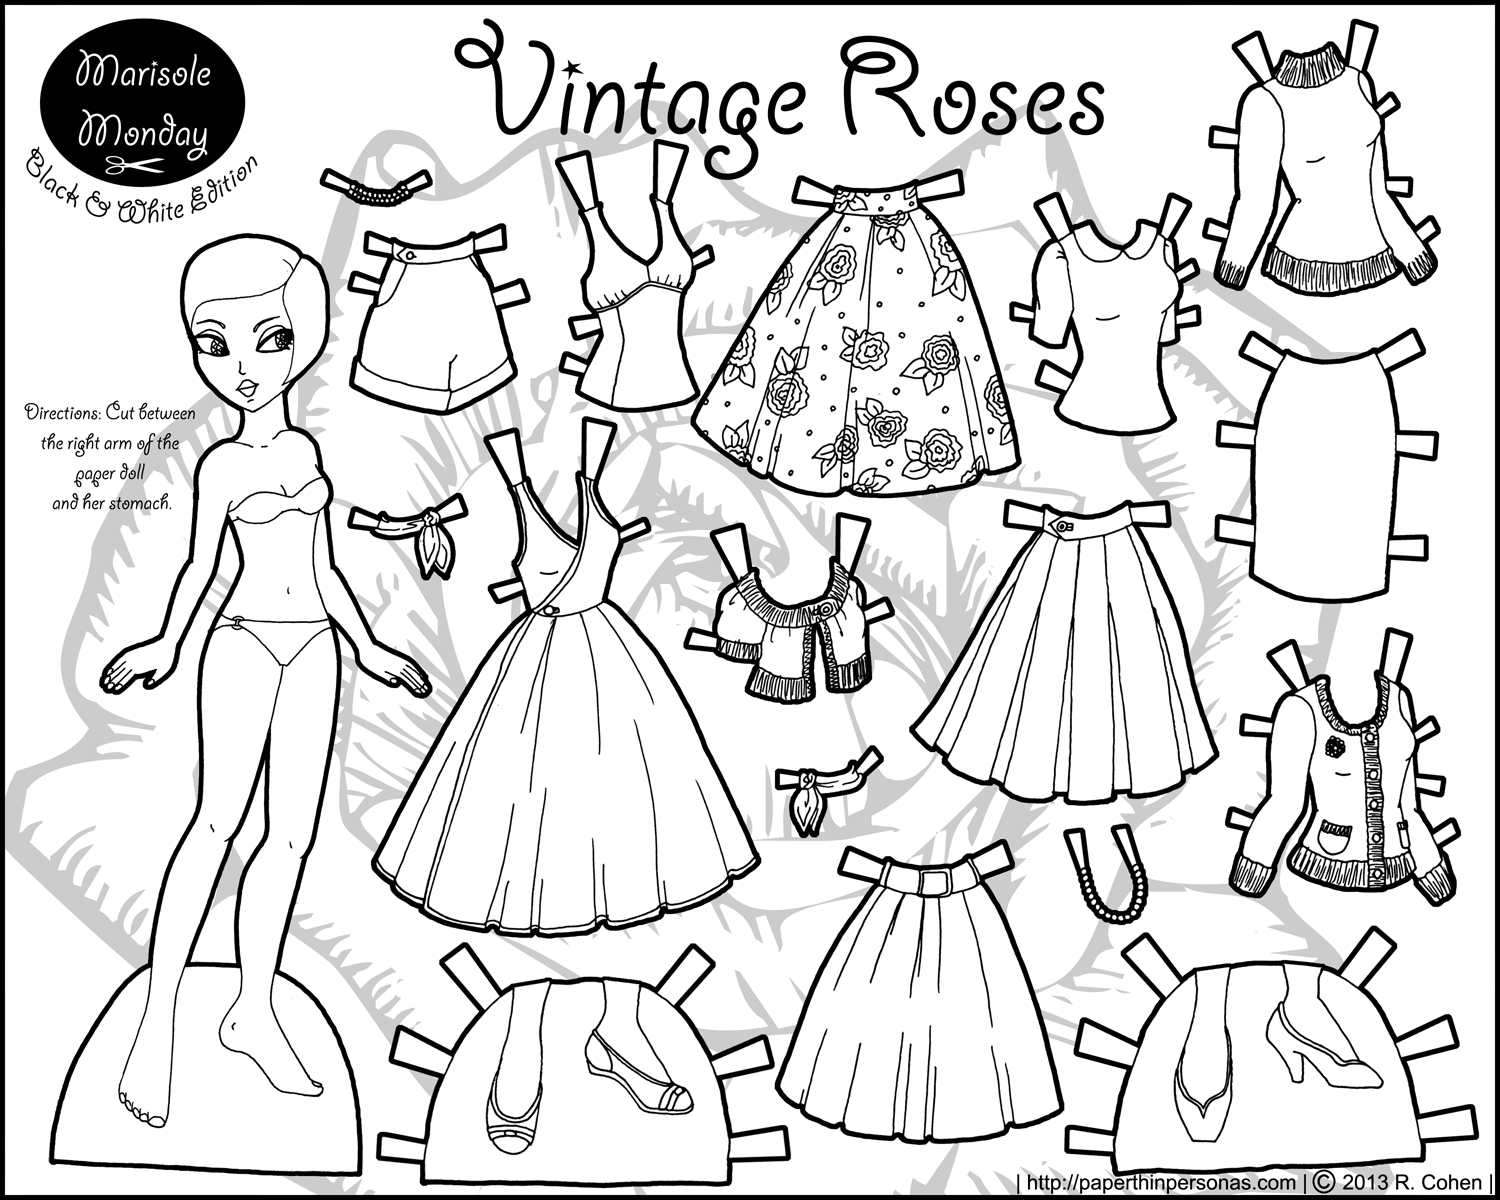 dress up paper dolls printable pixie puck archives page 2 of 10 paper thin personas printable dolls dress paper up